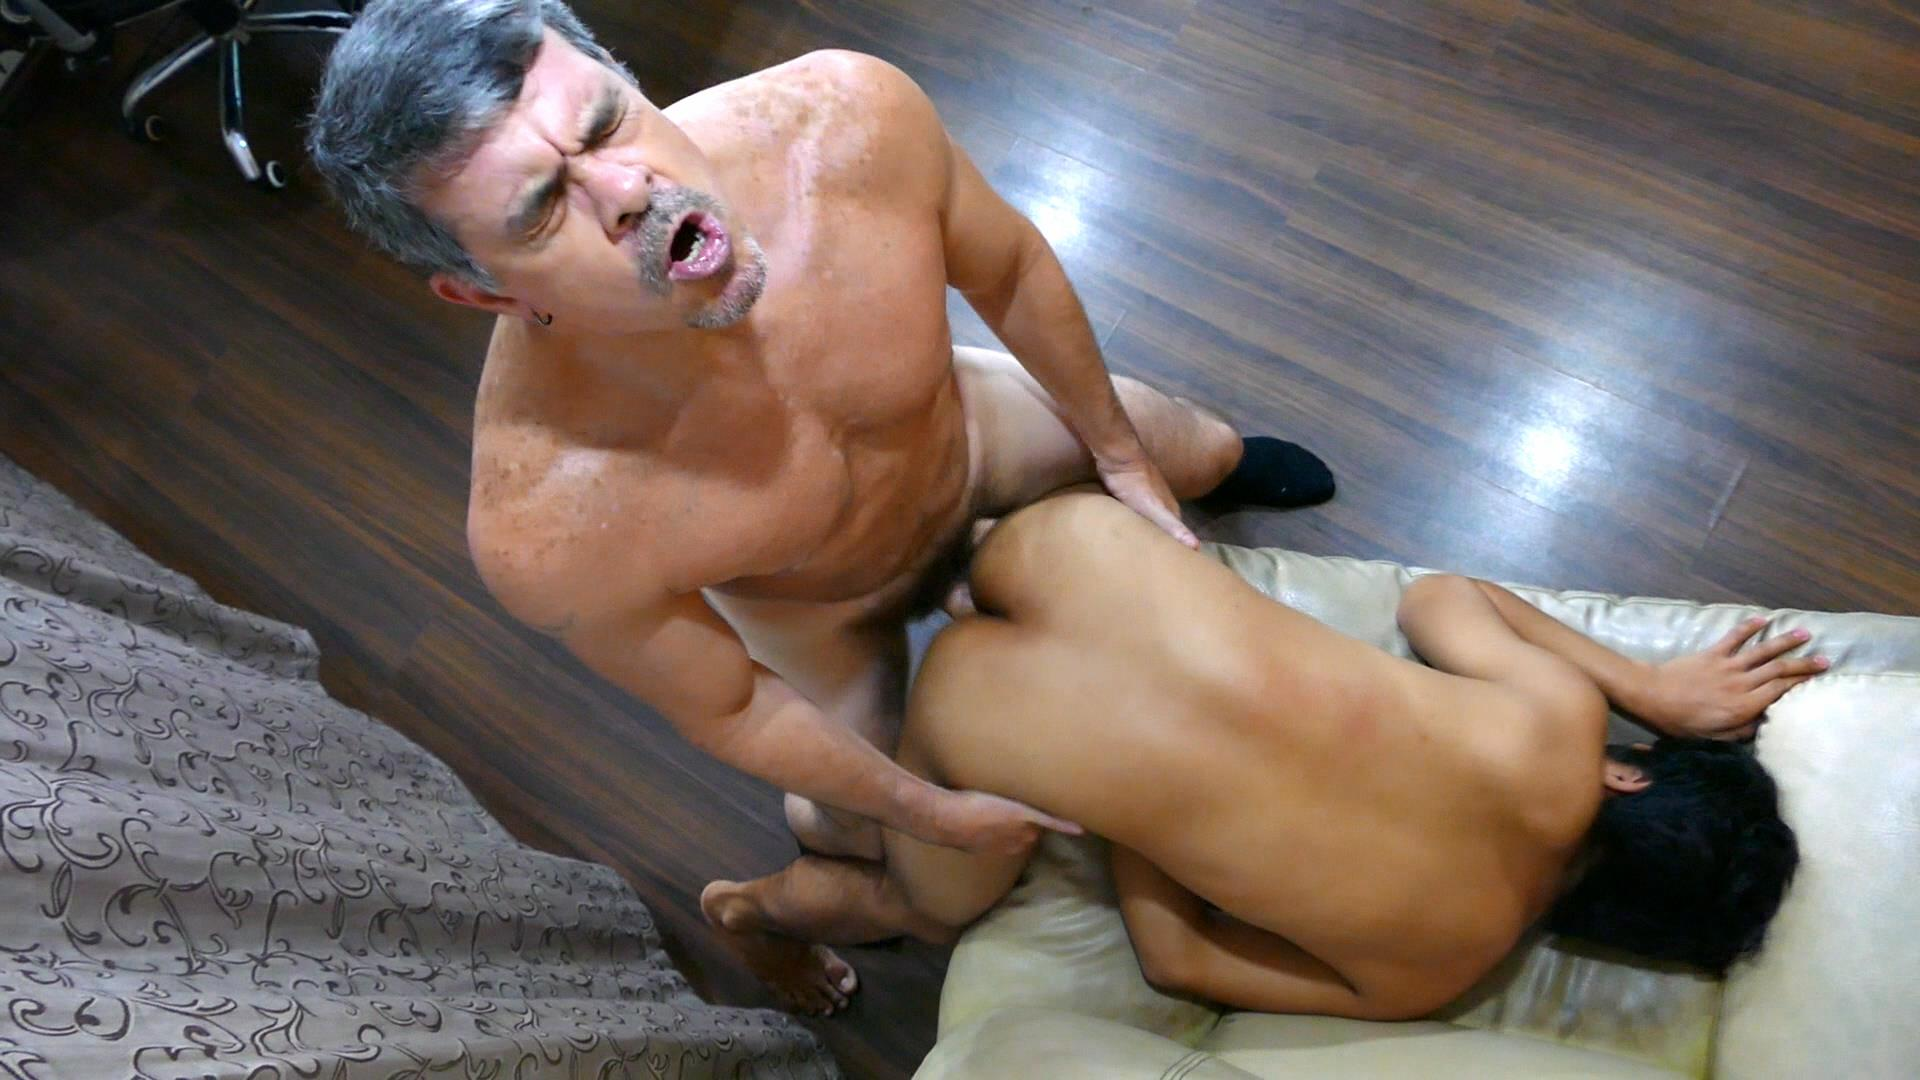 Daddys-Asians-Asian-Twink-Gets-Barebacked-By-Daddy-24 Daddy Breeds An Asian Boy Ass During A Job Interview